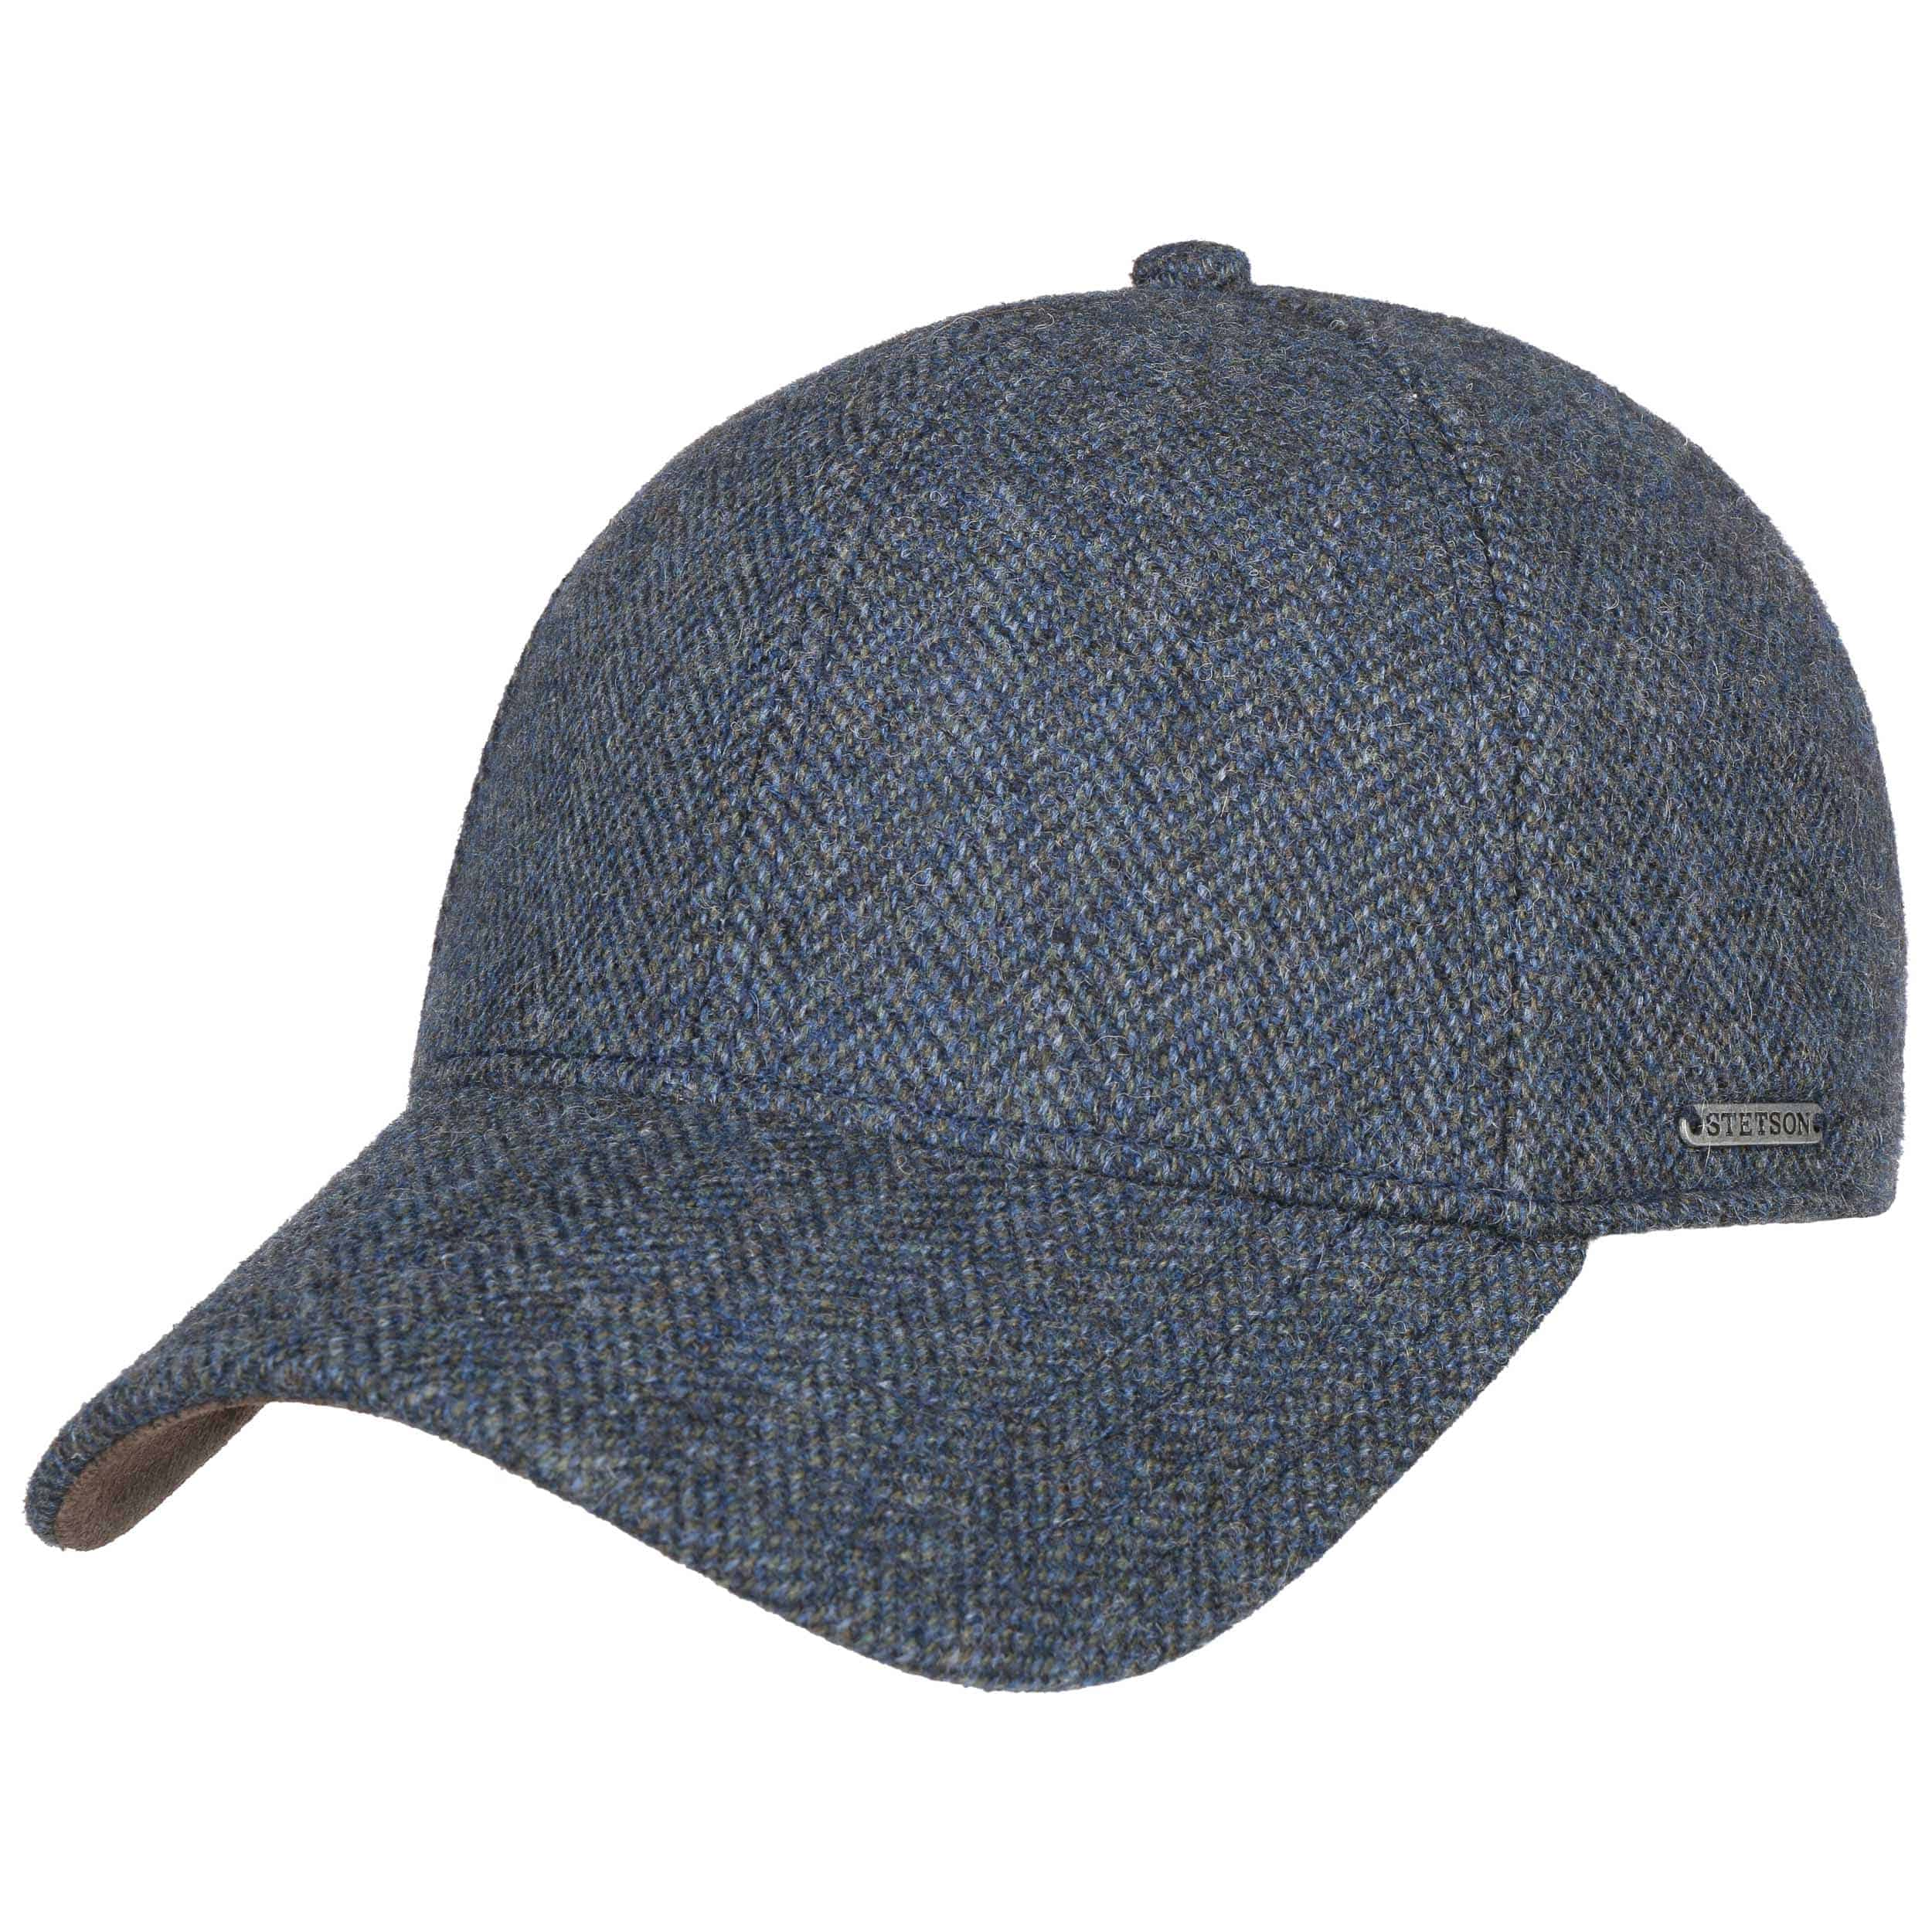 c1b64f07 ... Plano Woolrich Cap by Stetson - navy 2 ...